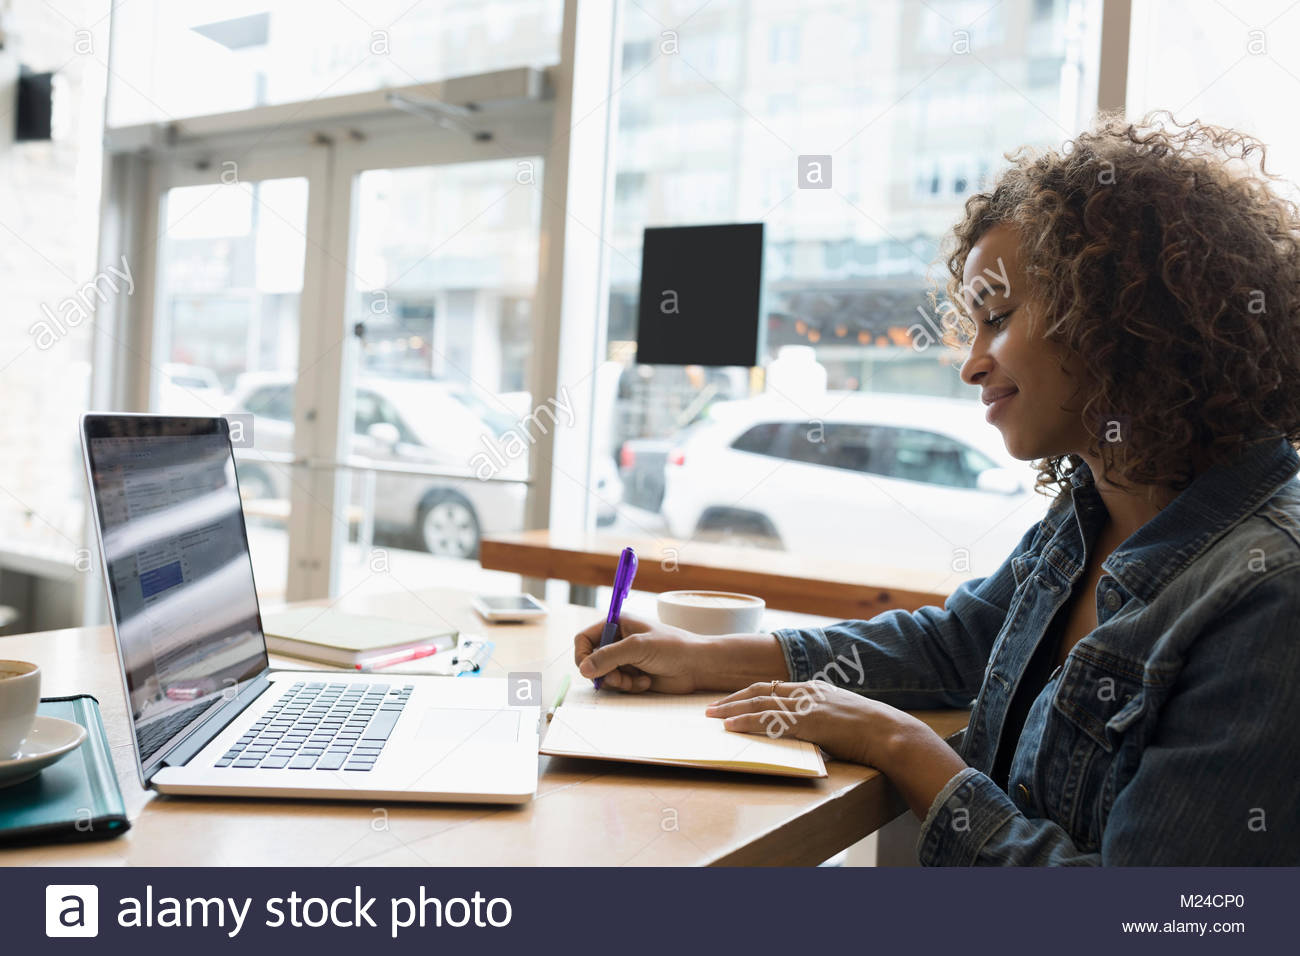 Smiling woman working at laptop, taking notes in cafe - Stock Image